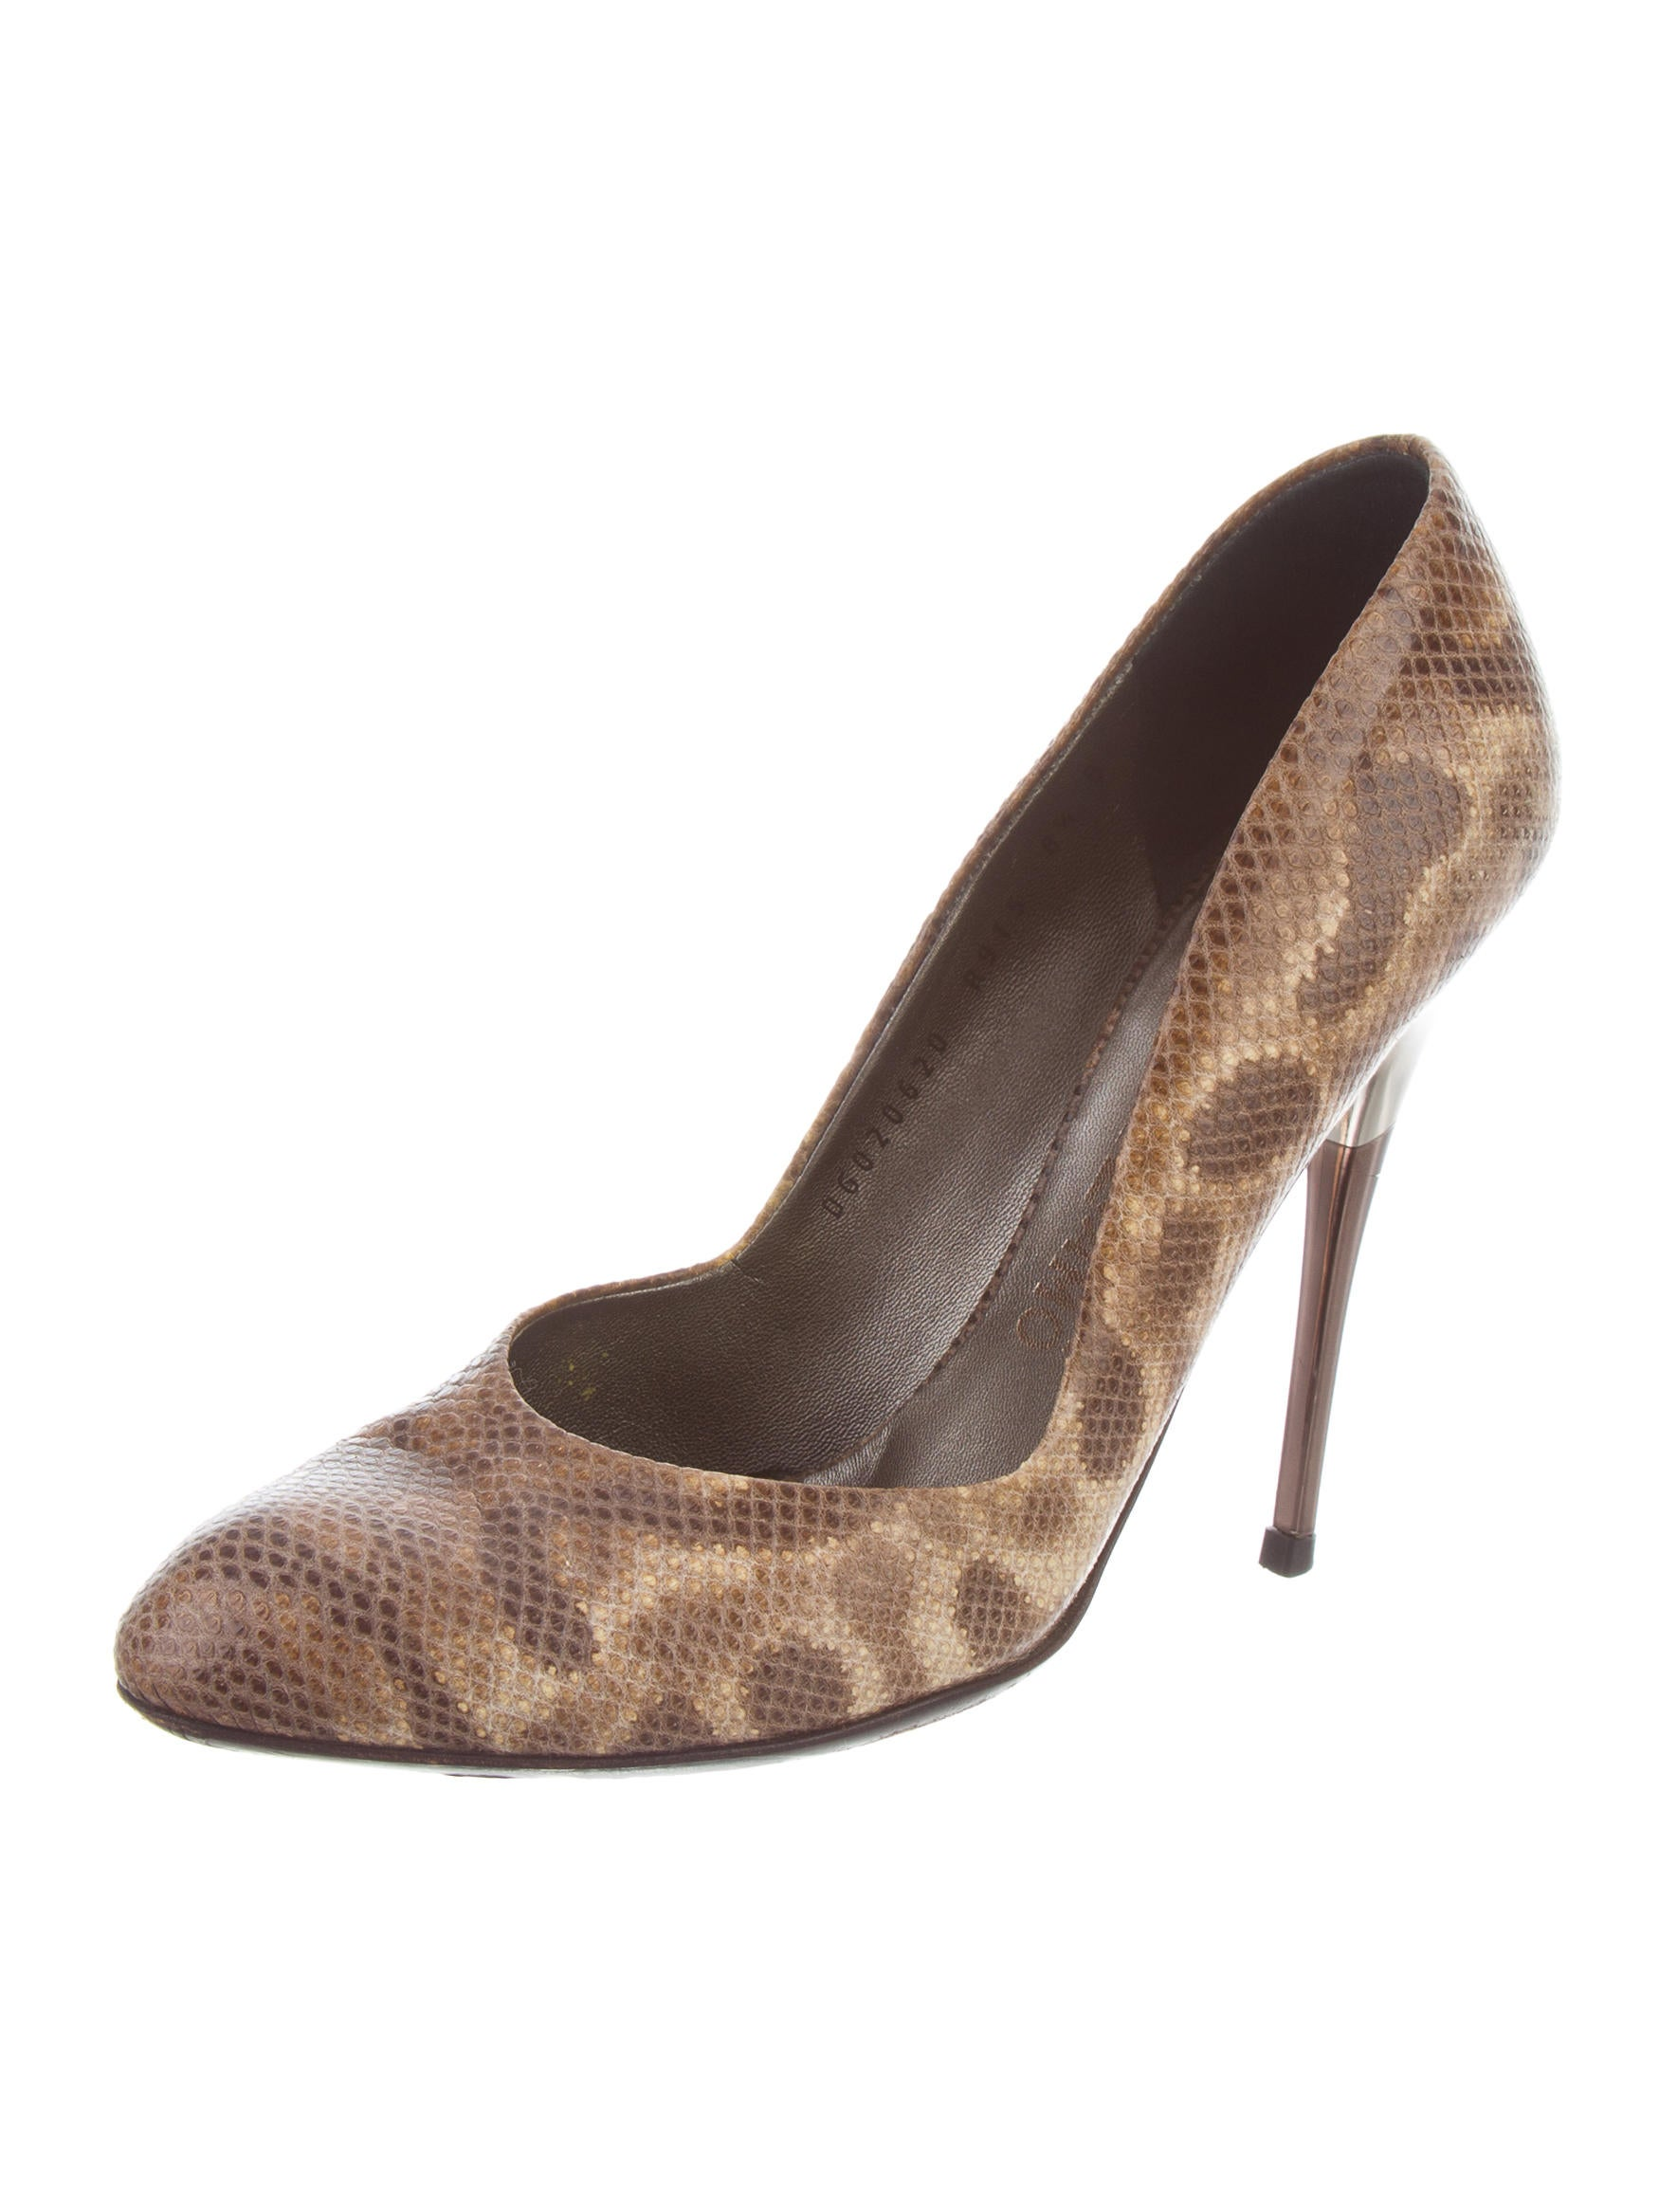 Salvatore Ferragamo Karung Round-Toe Pumps low shipping fee looking for sale online sale latest cheap collections Xzk0KzRxCj